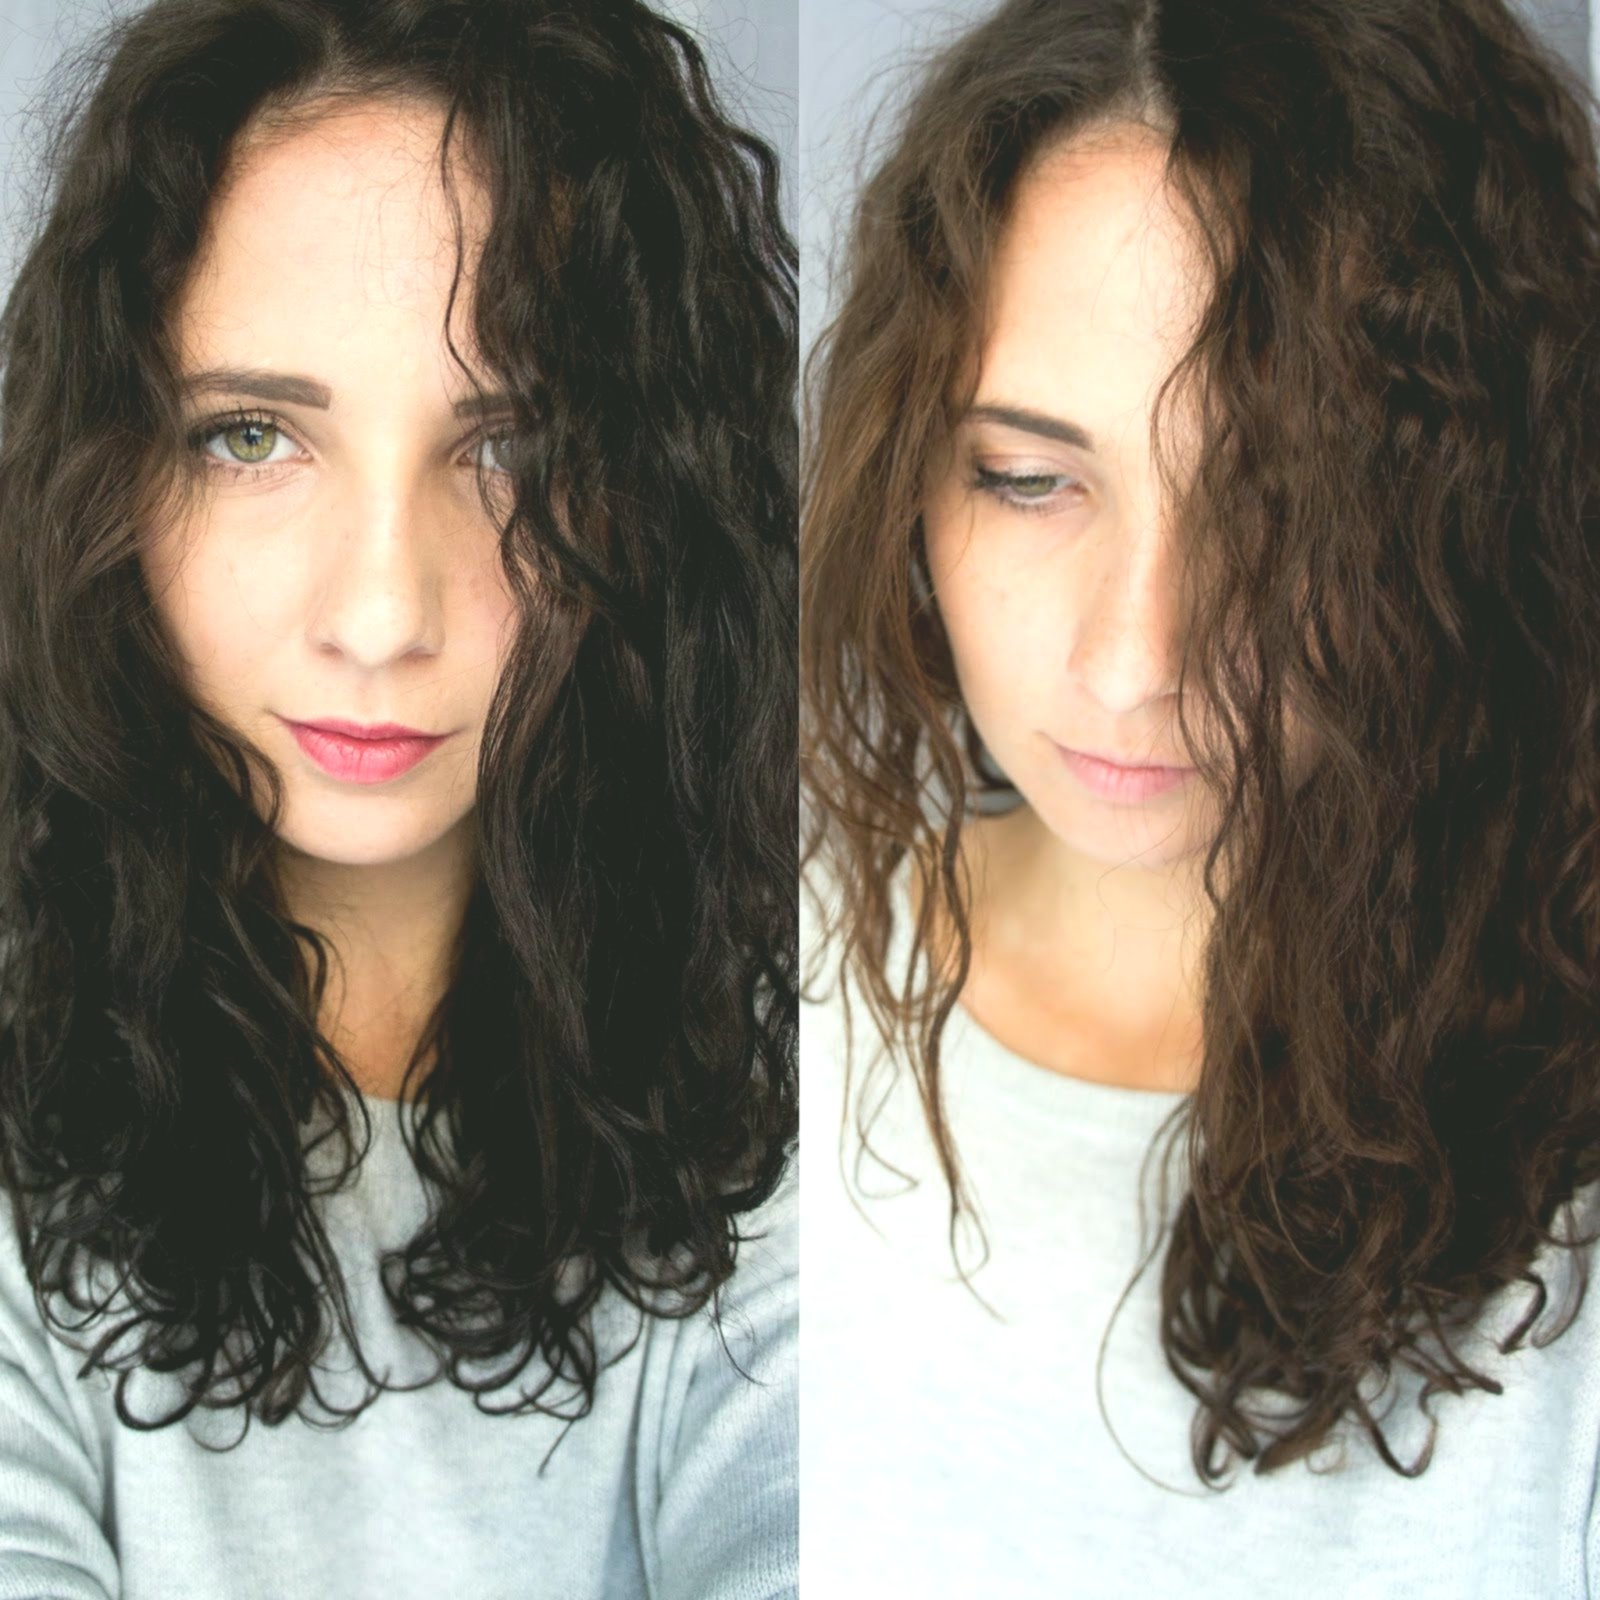 excellent hair color for fair skin photo picture Best Hair Color For Light Skin Concepts